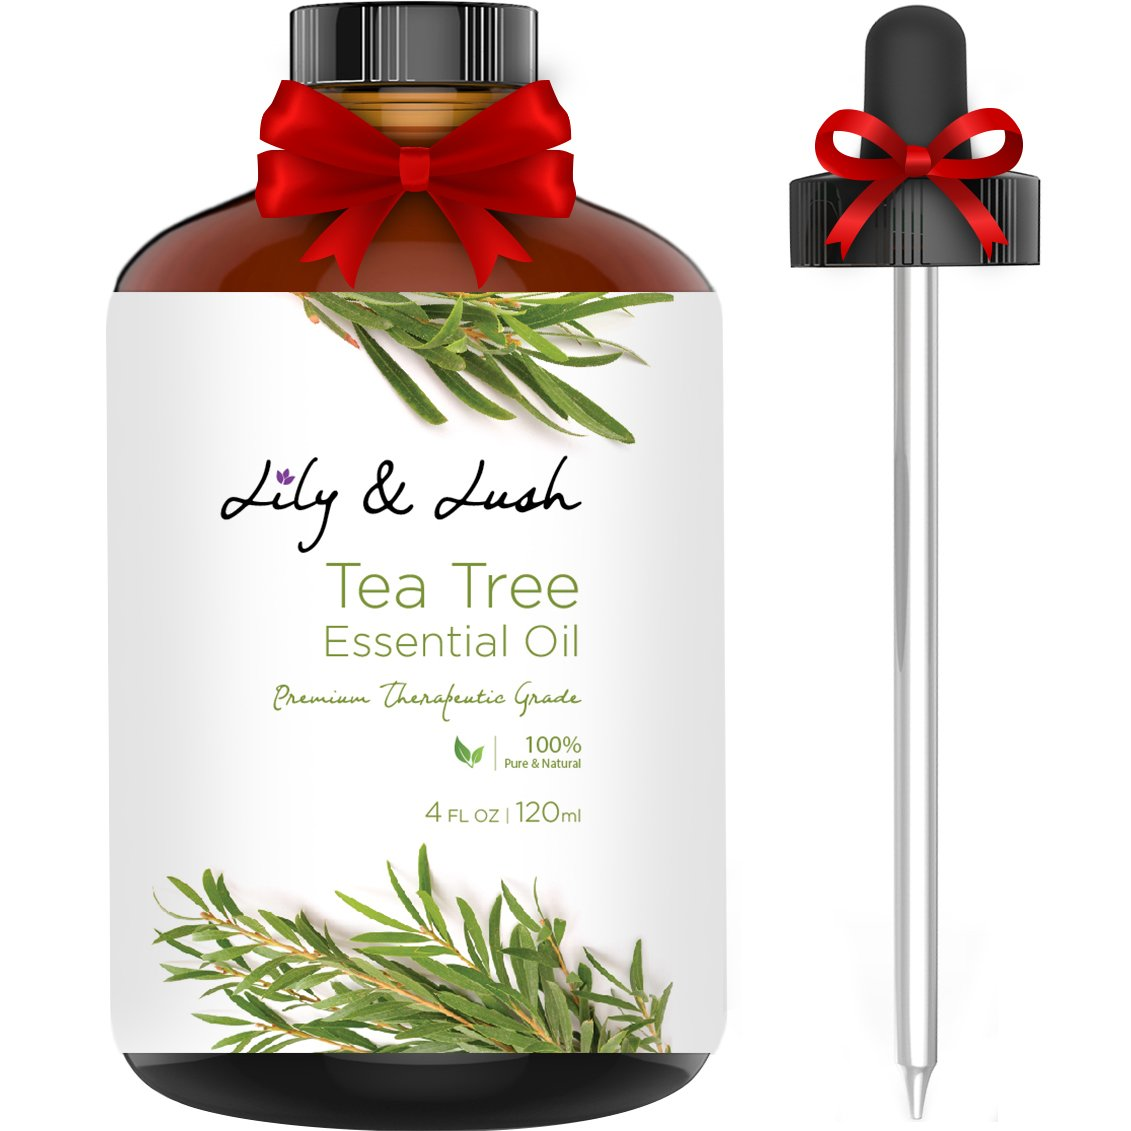 Lily & Lush XL Bottle 100% Pure Australian Tea Tree Essential Oil | Undiluted, Therapeutic Grade | The Superior Choice for Toe Fungus Treatment or to Purify, Cleanse & Renew I 4 fl oz w/Dropper